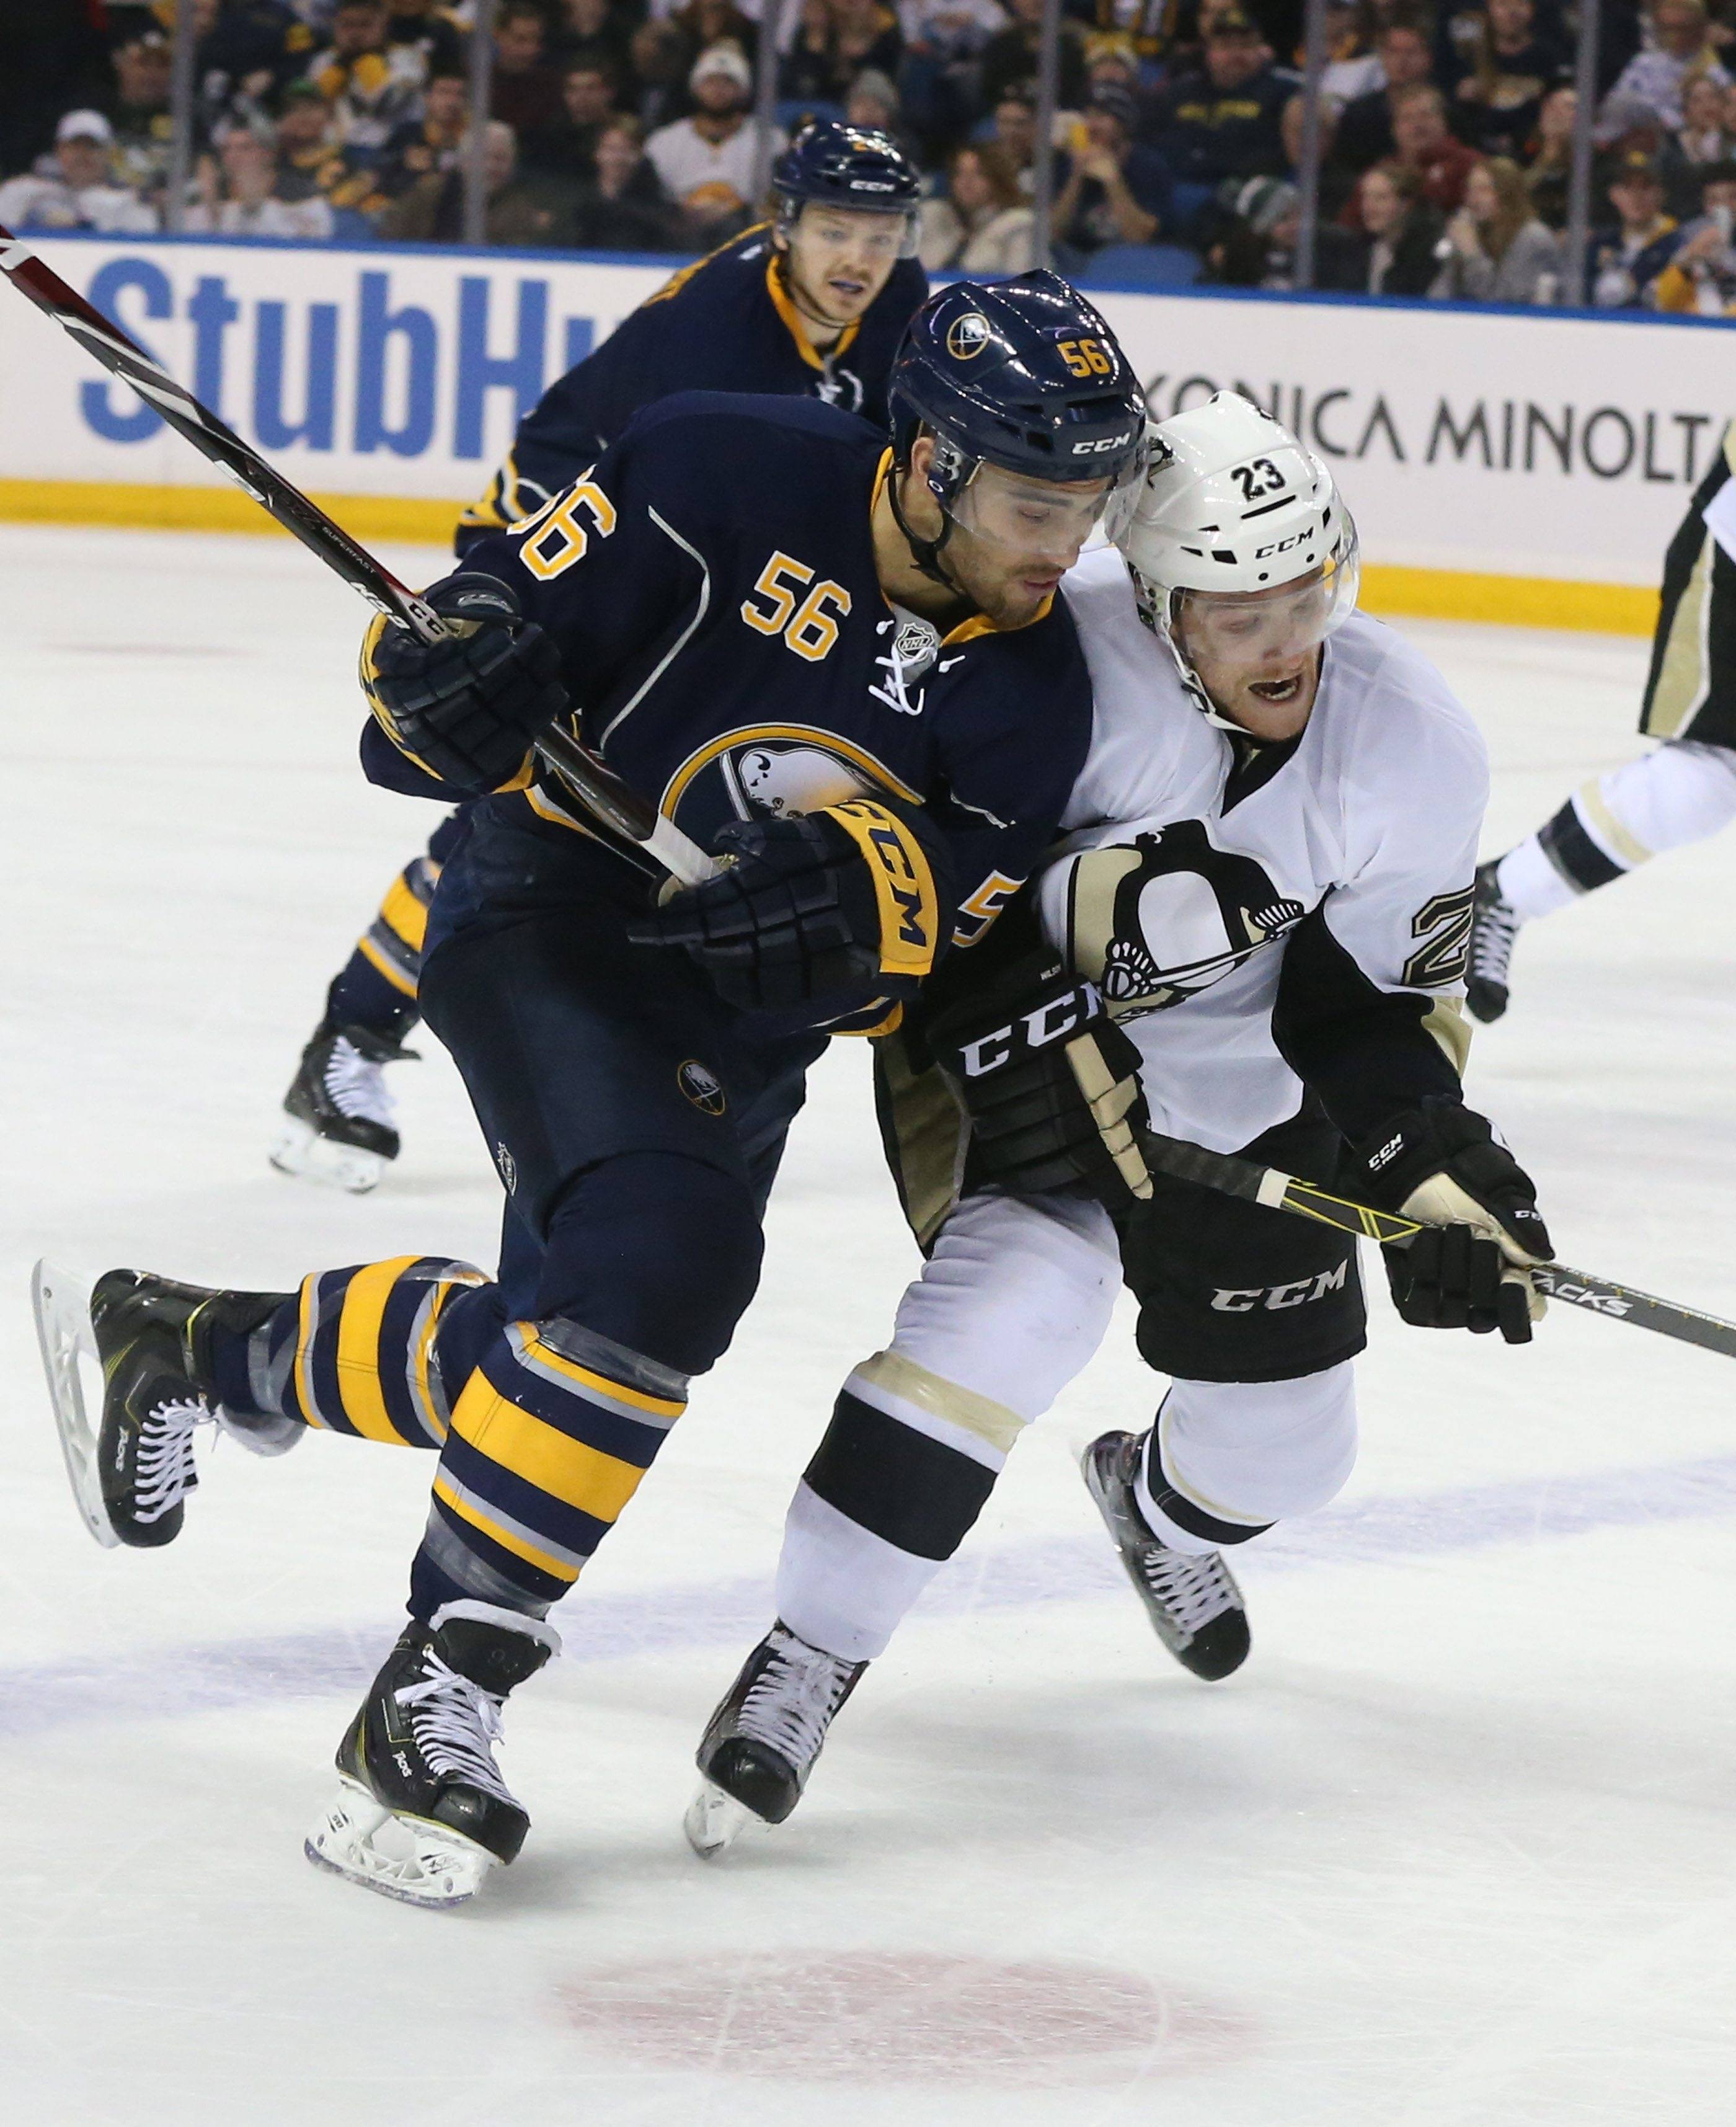 2 lie ncut Buffalo Sabres right wing Justin Bailey (56) battles Pittsburgh Penguins center Scott Wilson (23) for the puck in the first period at First Niagara Center in Buffalo,NY on Sunday, Feb. 21, 2016.  (James P. McCoy/ Buffalo News)